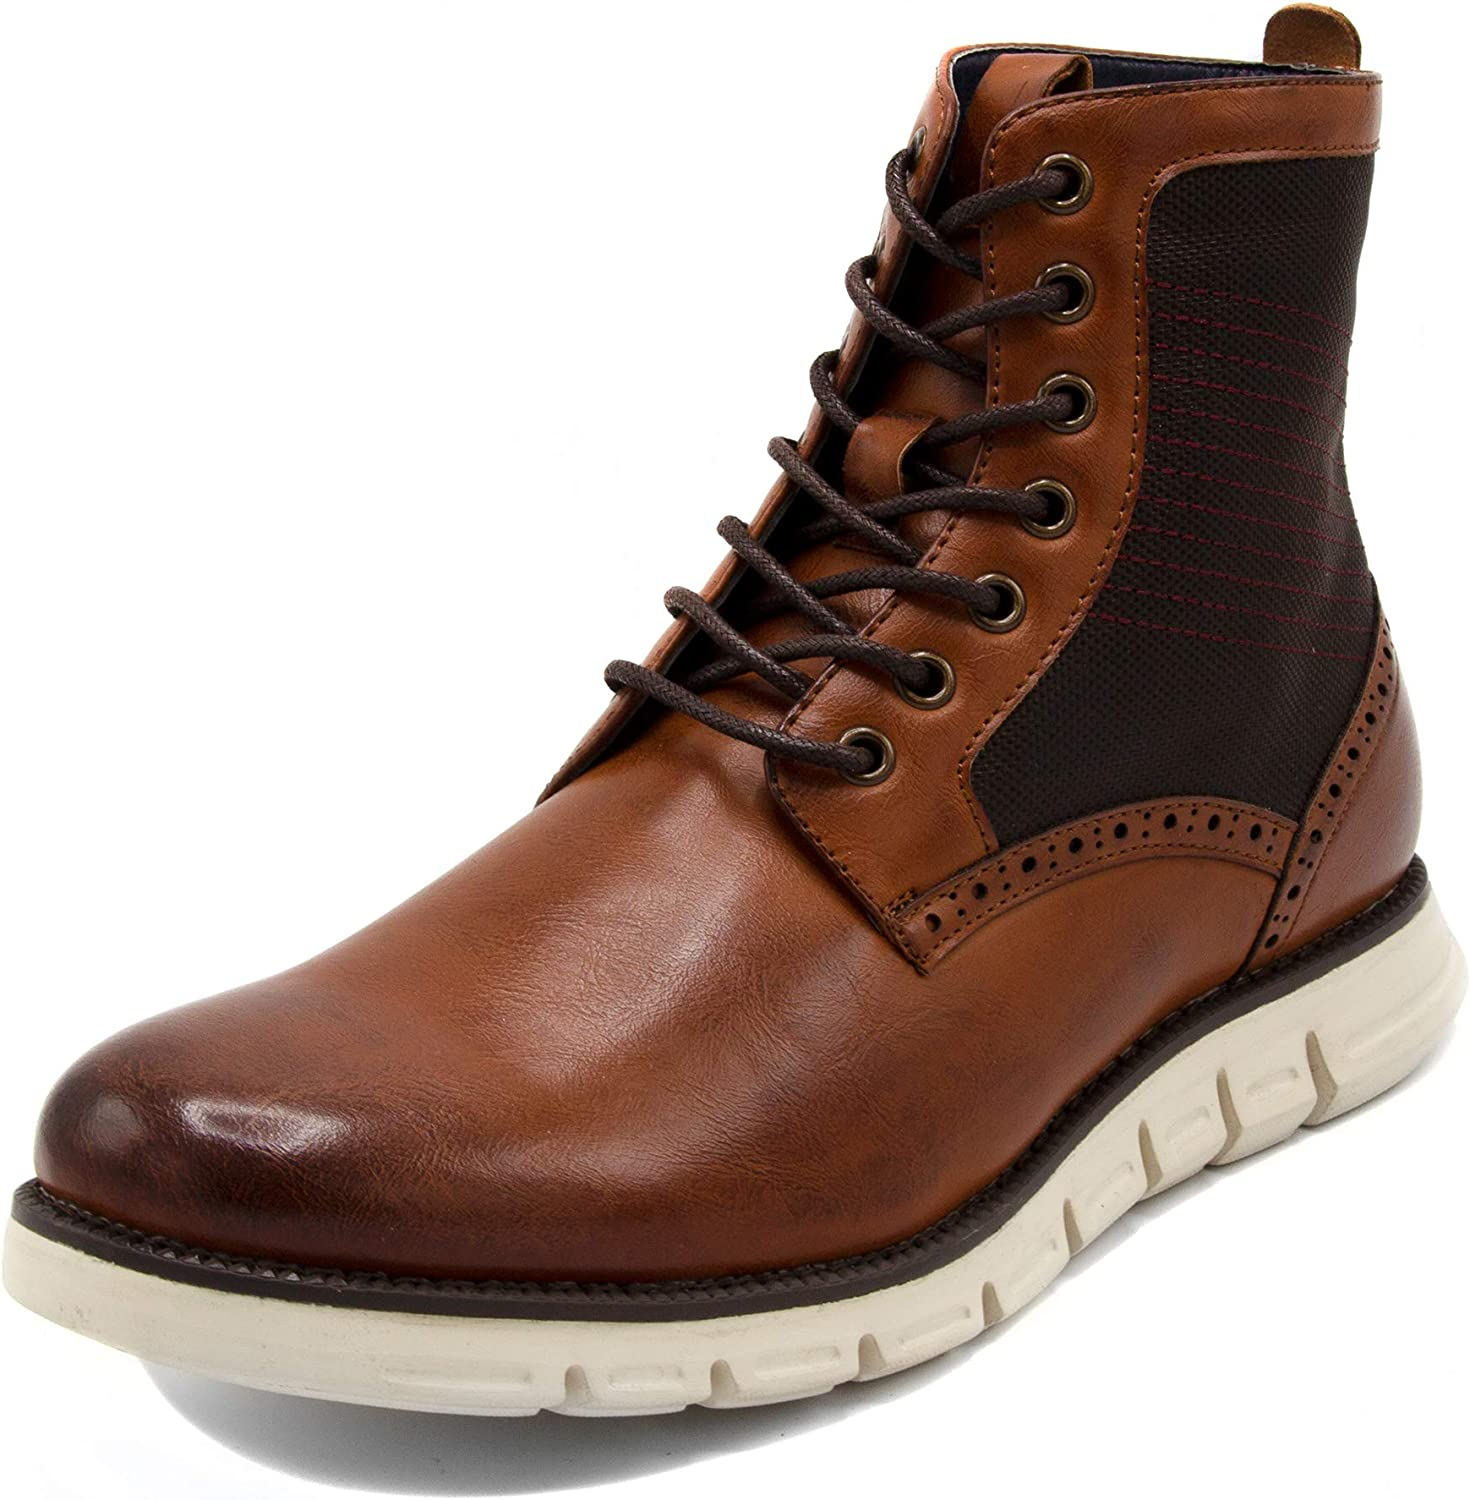 Nautica Mens Lace Up Boot - Chukka Derby Boots for Men - Lightweight Mid Ankle Hiker Boots - Fashion Dress Mens Chukka Boot - Palmetto Mid